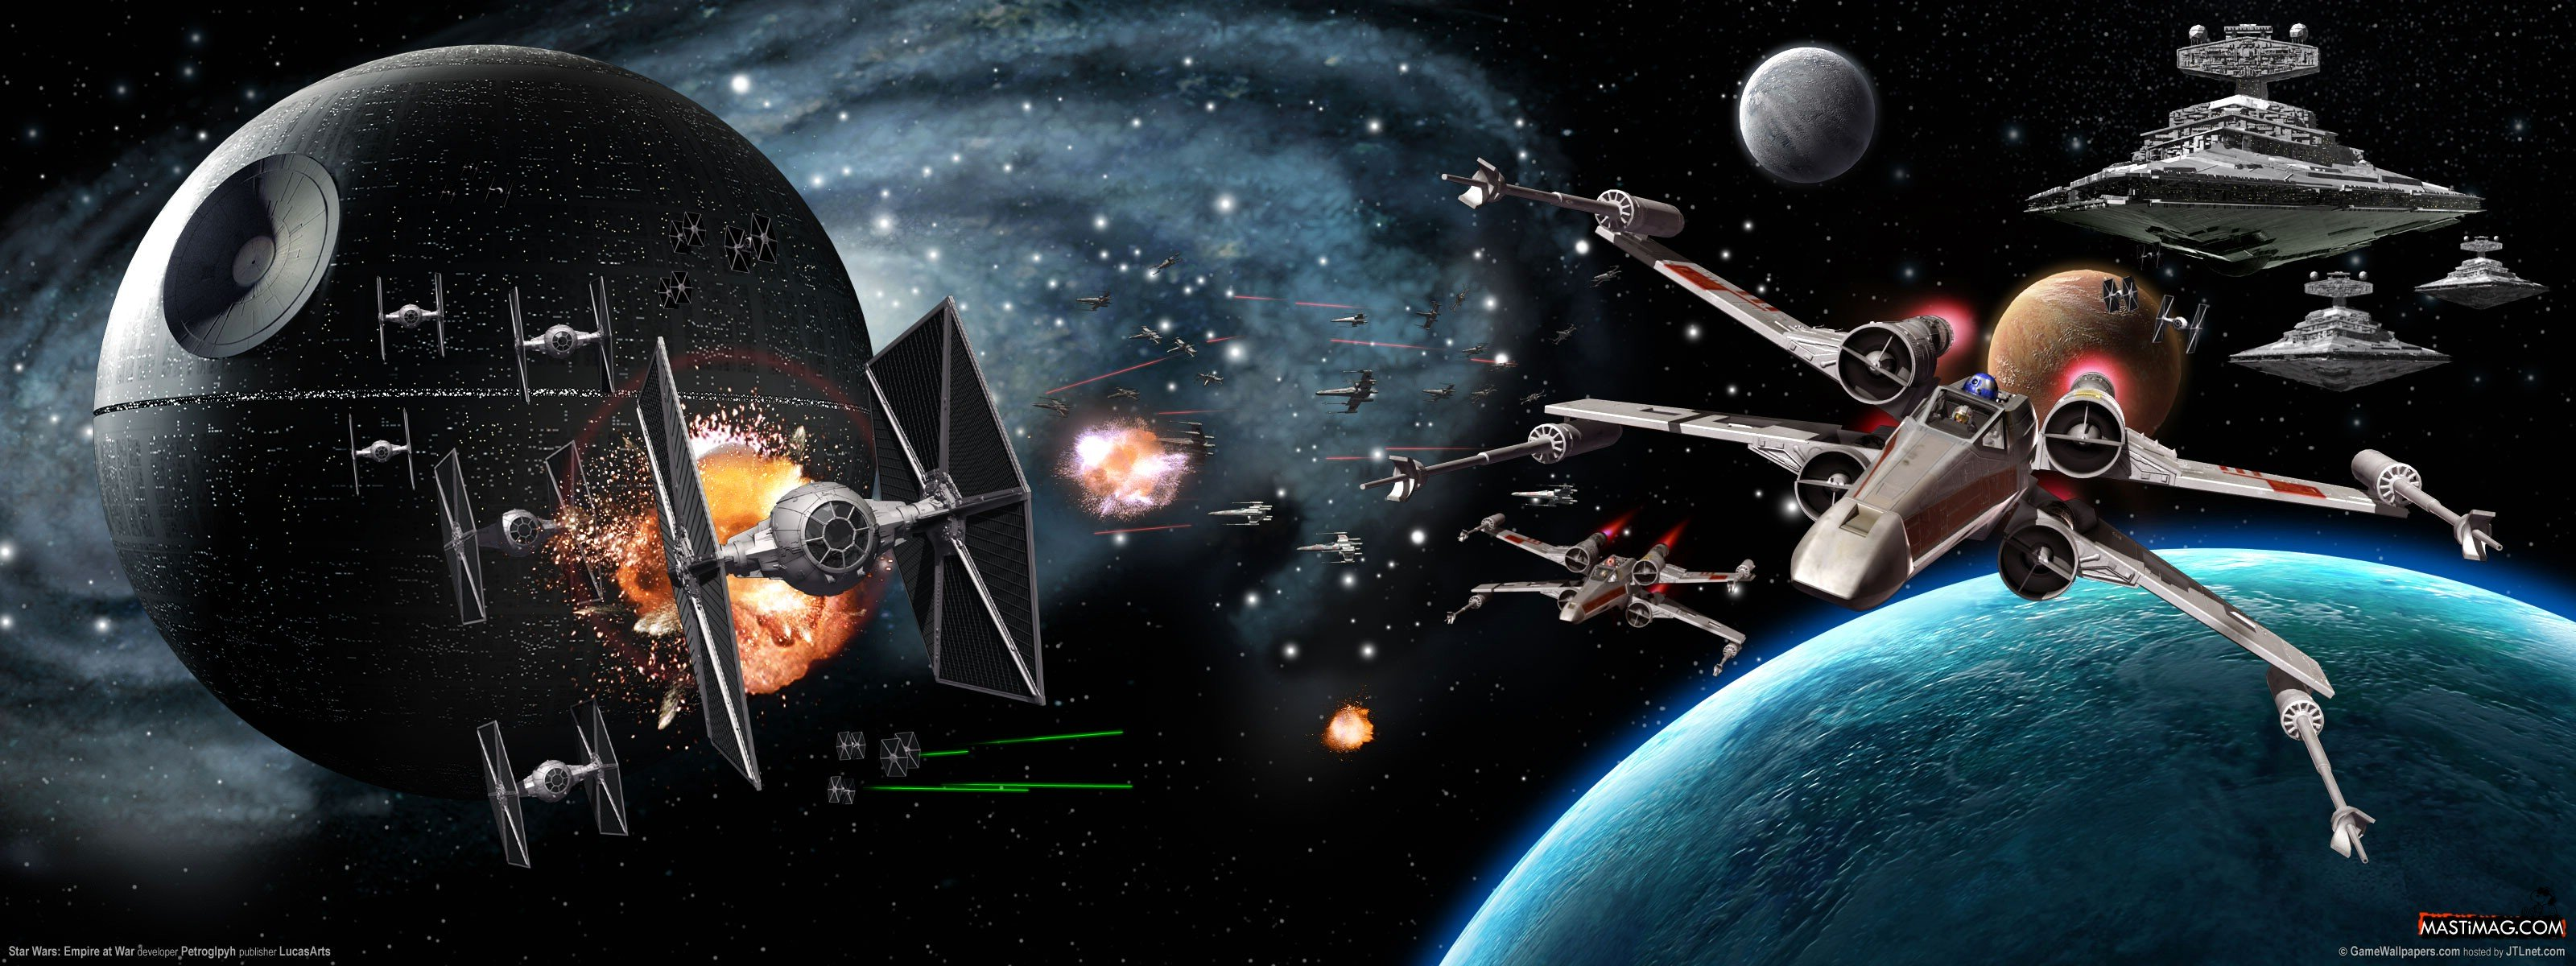 Star Wars Dual Monitor Wallpaper Sf Wallpaper